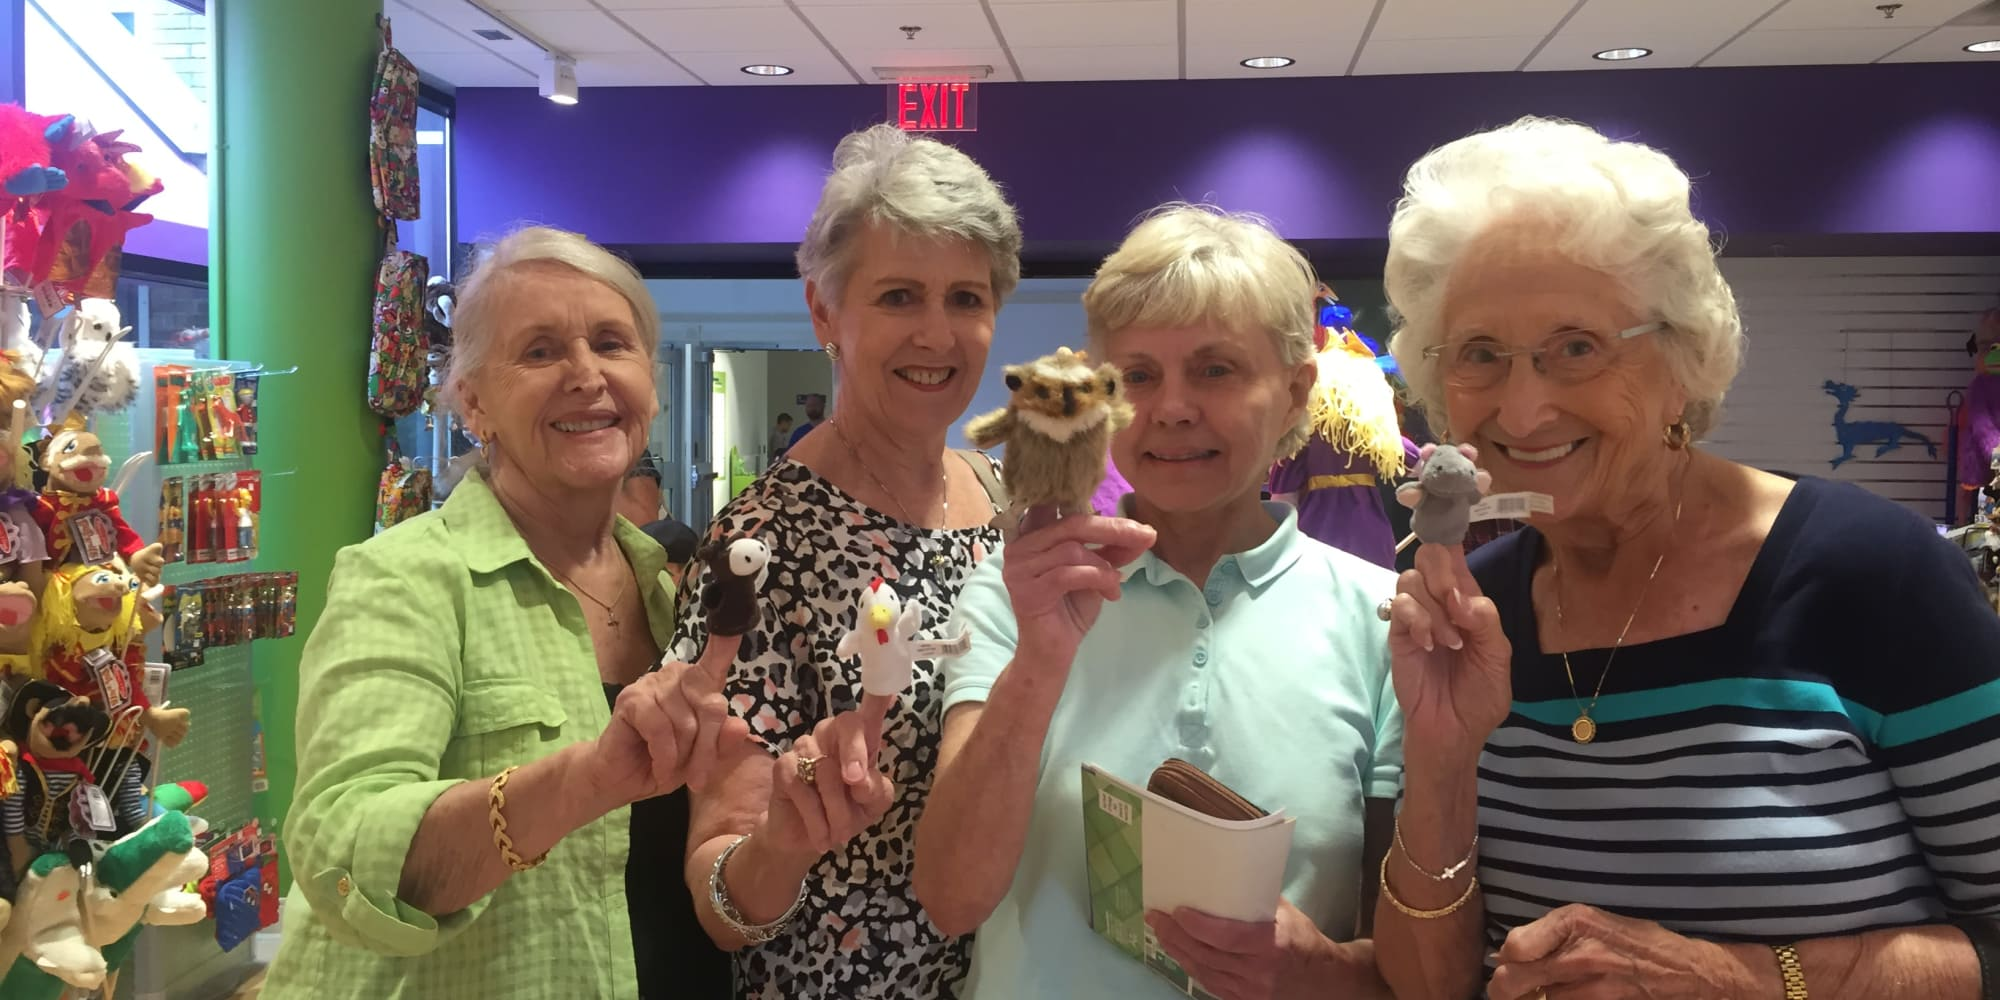 Residents from Ivy Creek Gracious Retirement Living in Glen Mills, Pennsylvania holding finger puppets in a store